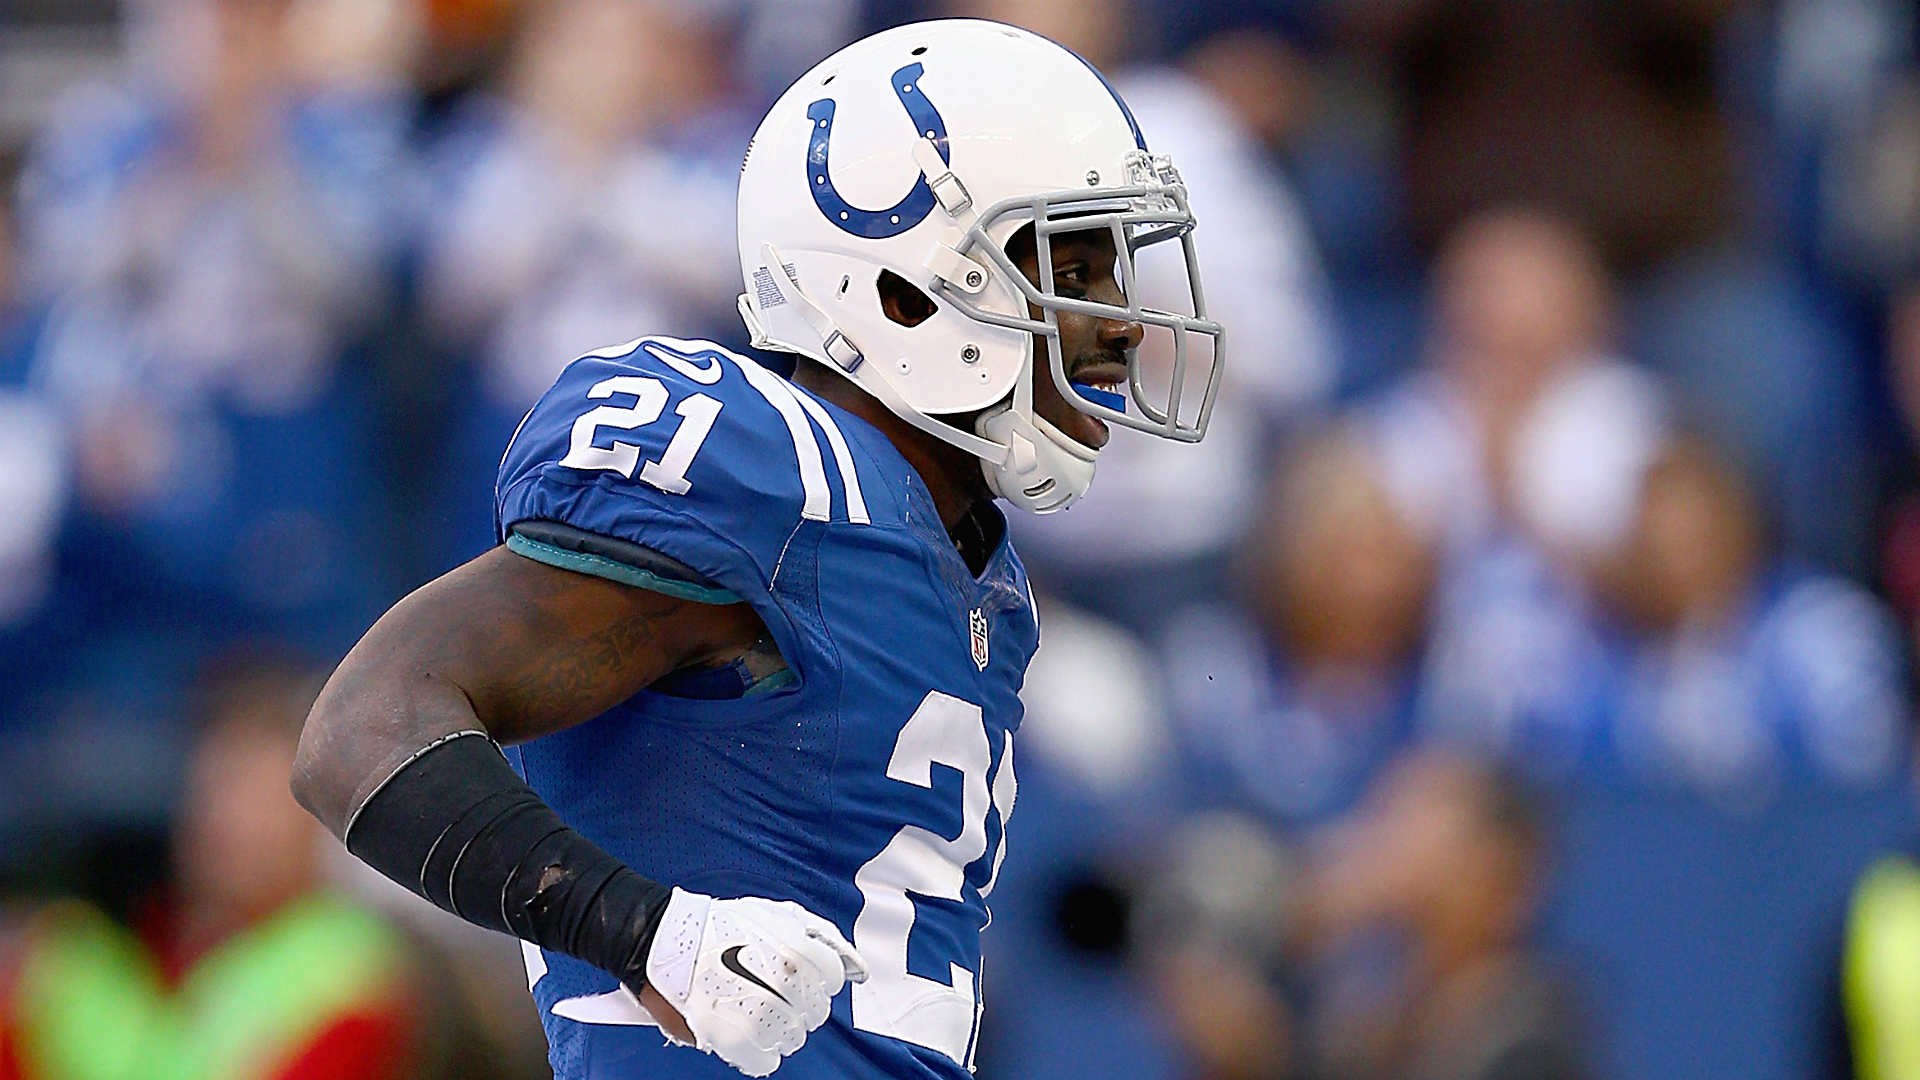 Colts DB Vontae Davis released from team